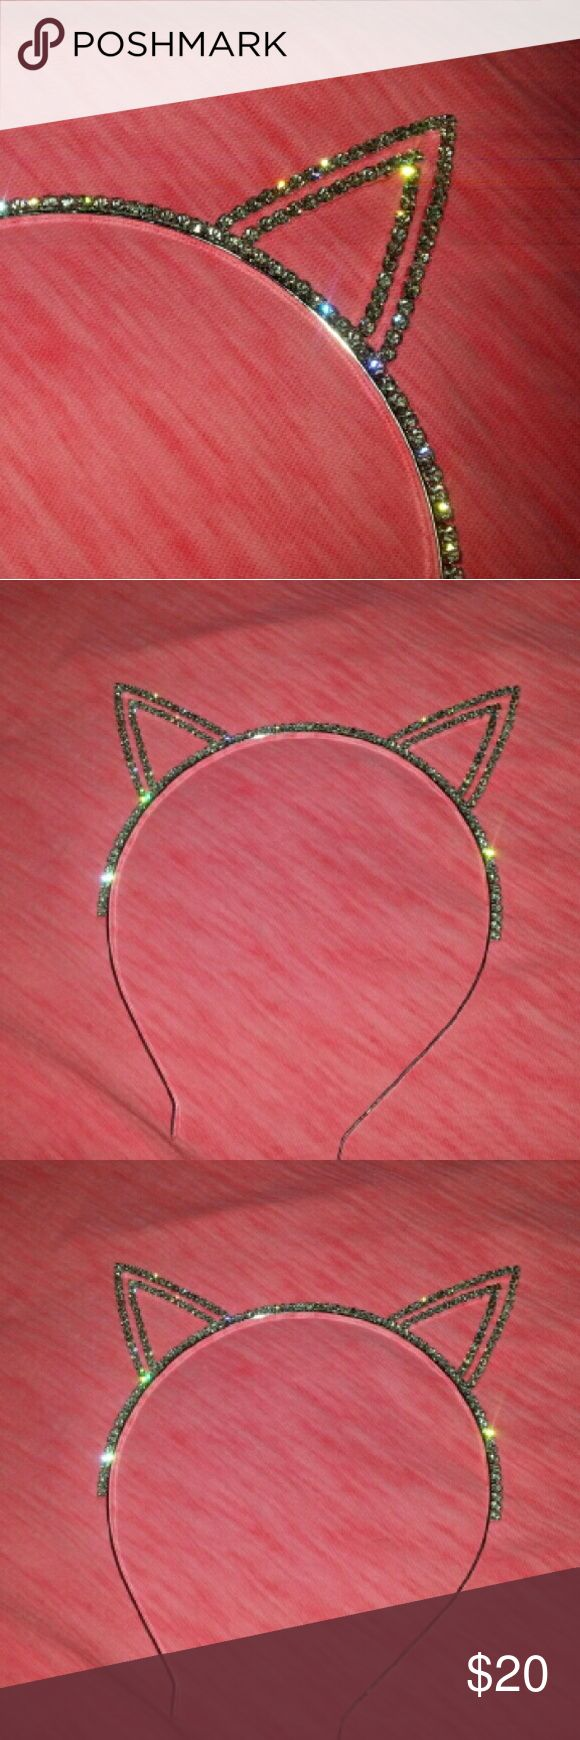 how to wear cat ears headband